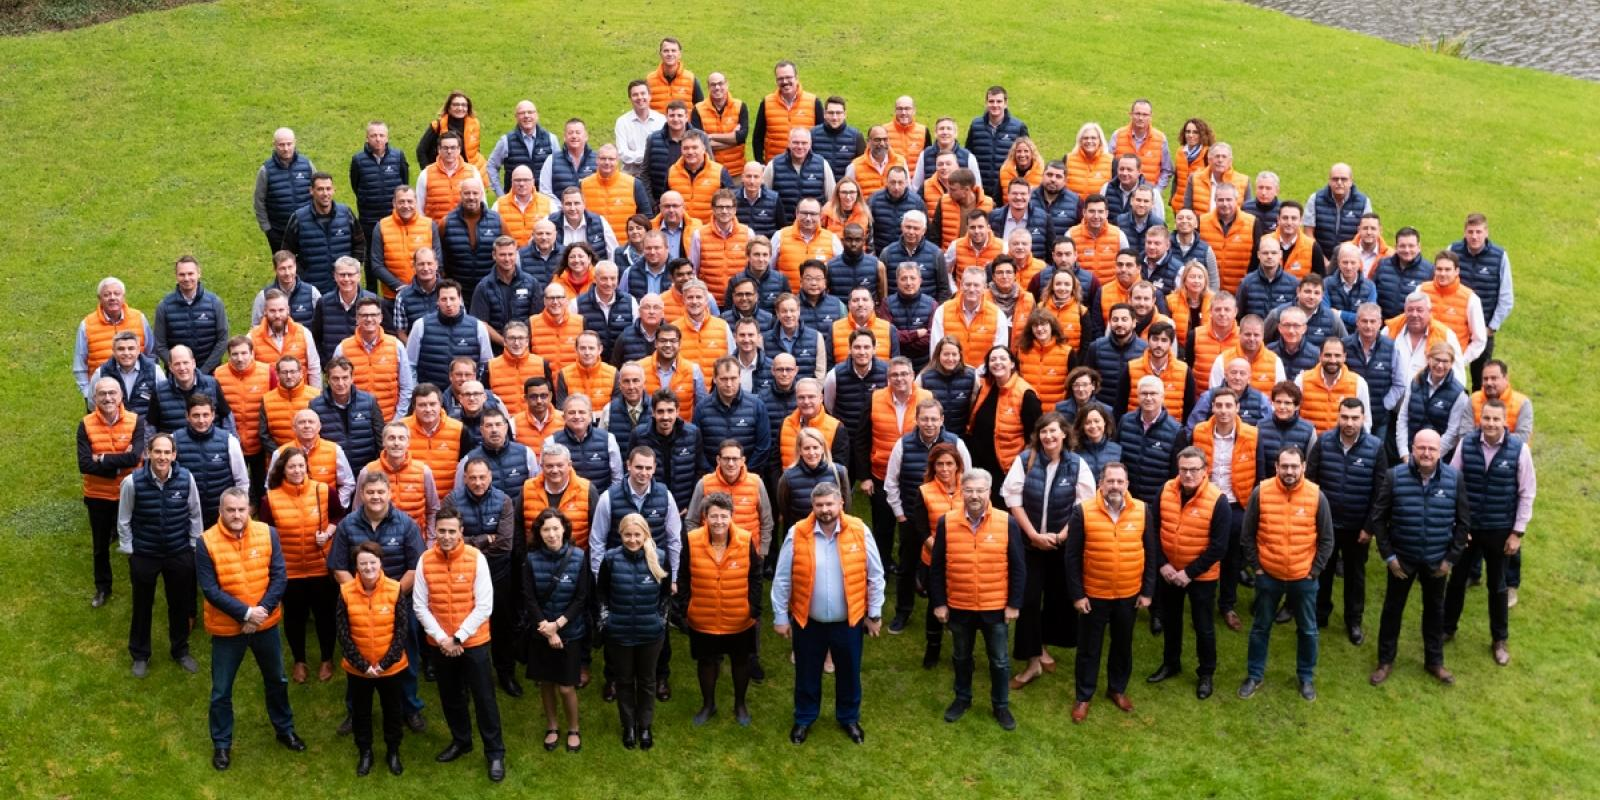 The EMEA teams gathered for the group picture